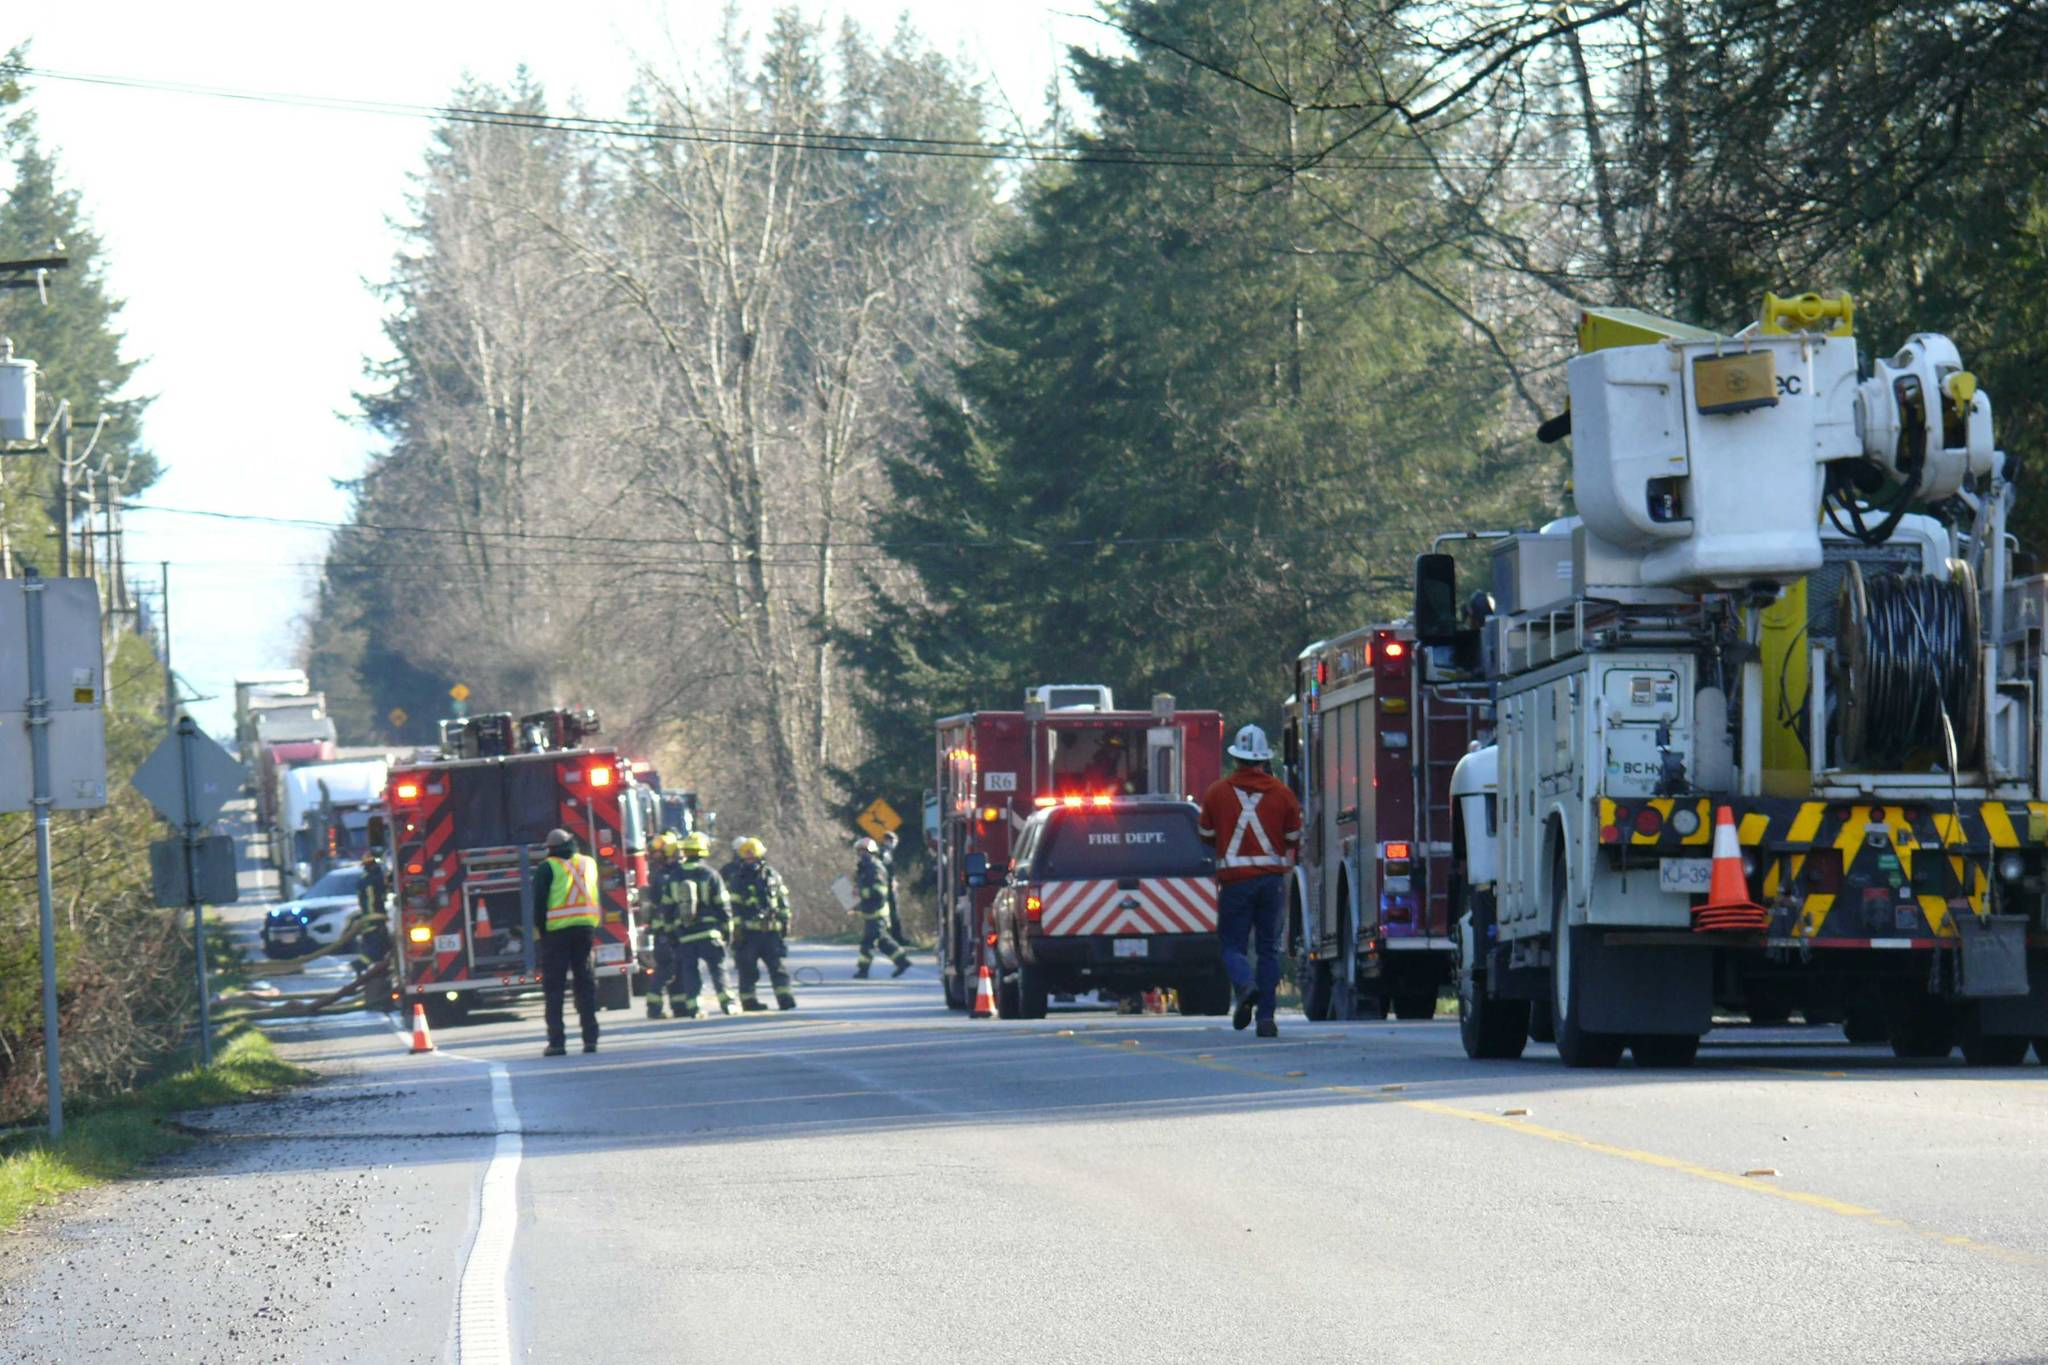 Crews are on scene at a house fire in Langley, Wednesday morning Feb. 3, 2021. Road is closed at 16th Avenue between 232nd and 240th streets. (Dan Ferguson/Langley Advance Times)